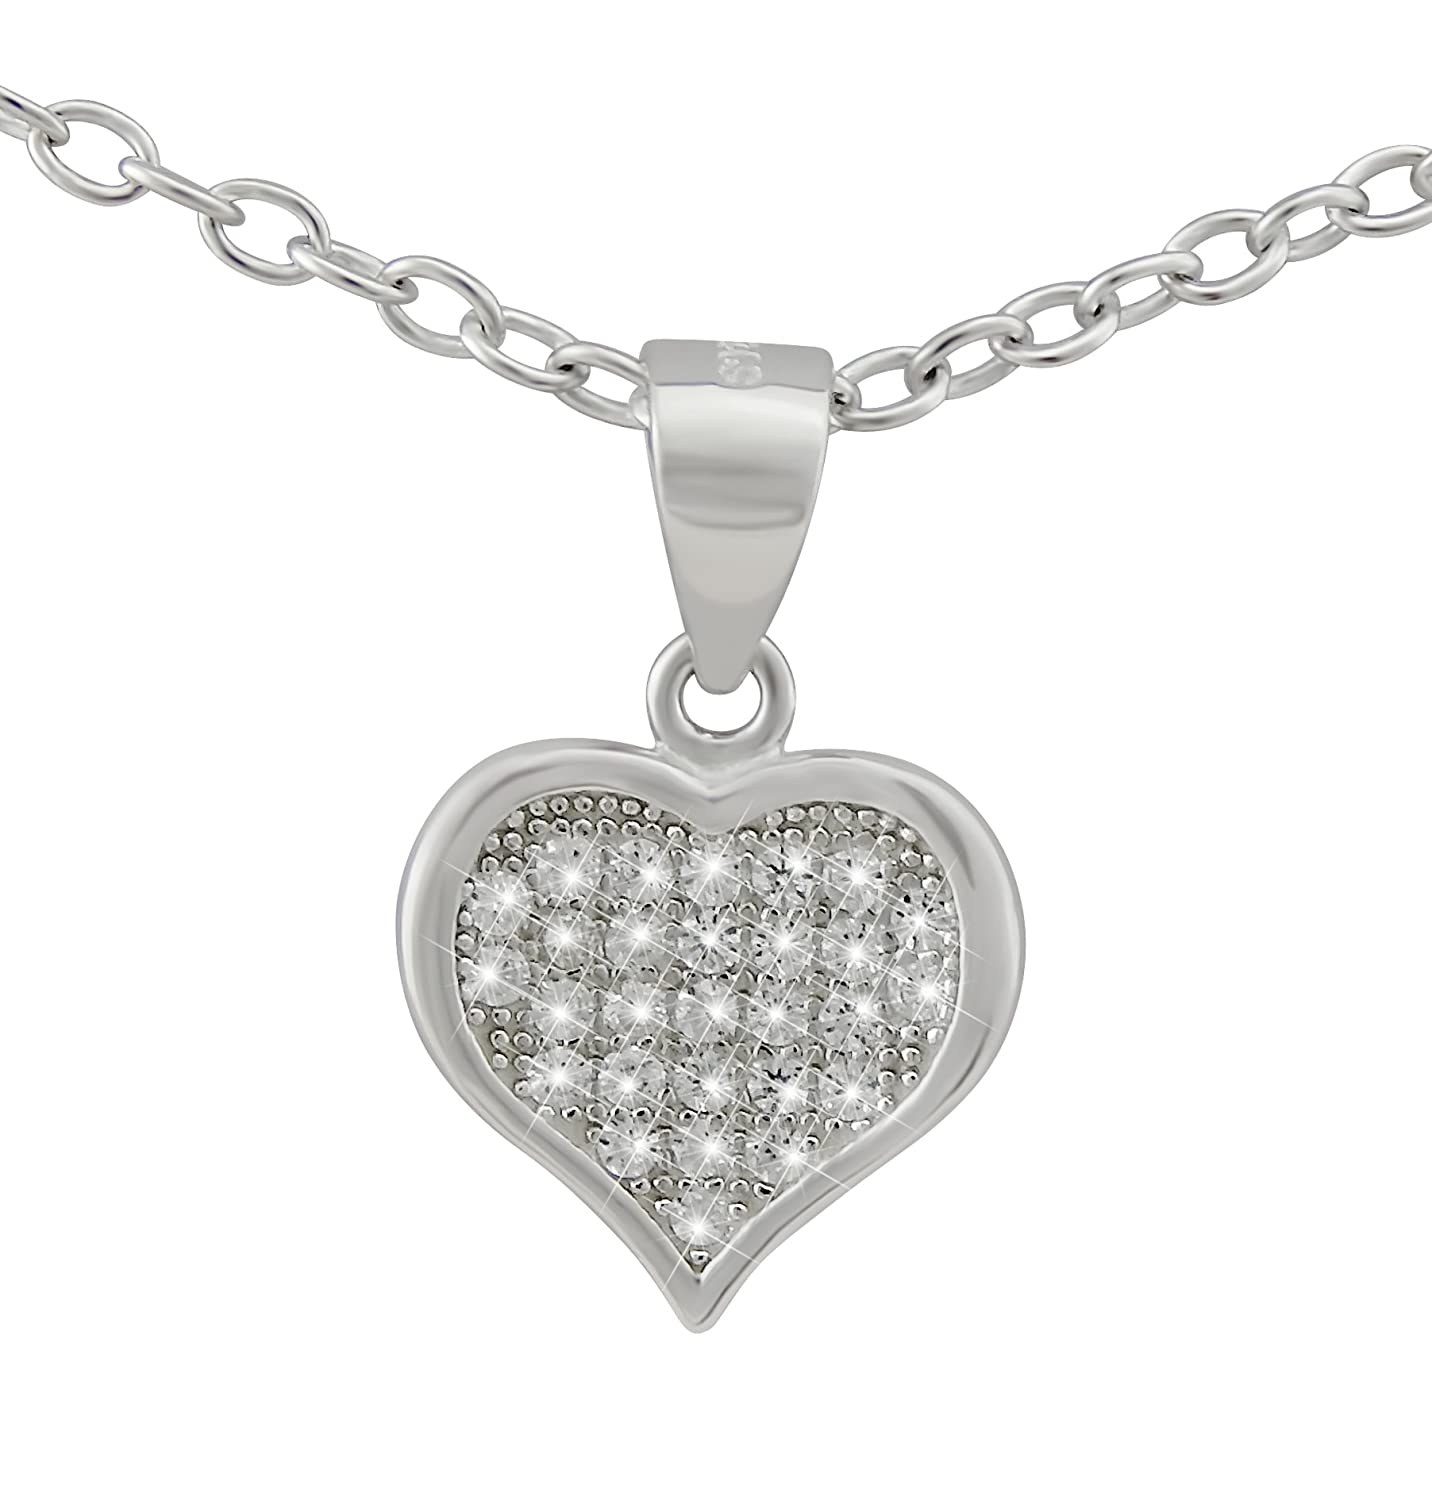 Veuer Chain Made of 925 Silver Rhodium Plated Jewellery For Women's Necklace with Pendant Made From Real Silver Heart with 28 CZ – Gifts for Women VF521